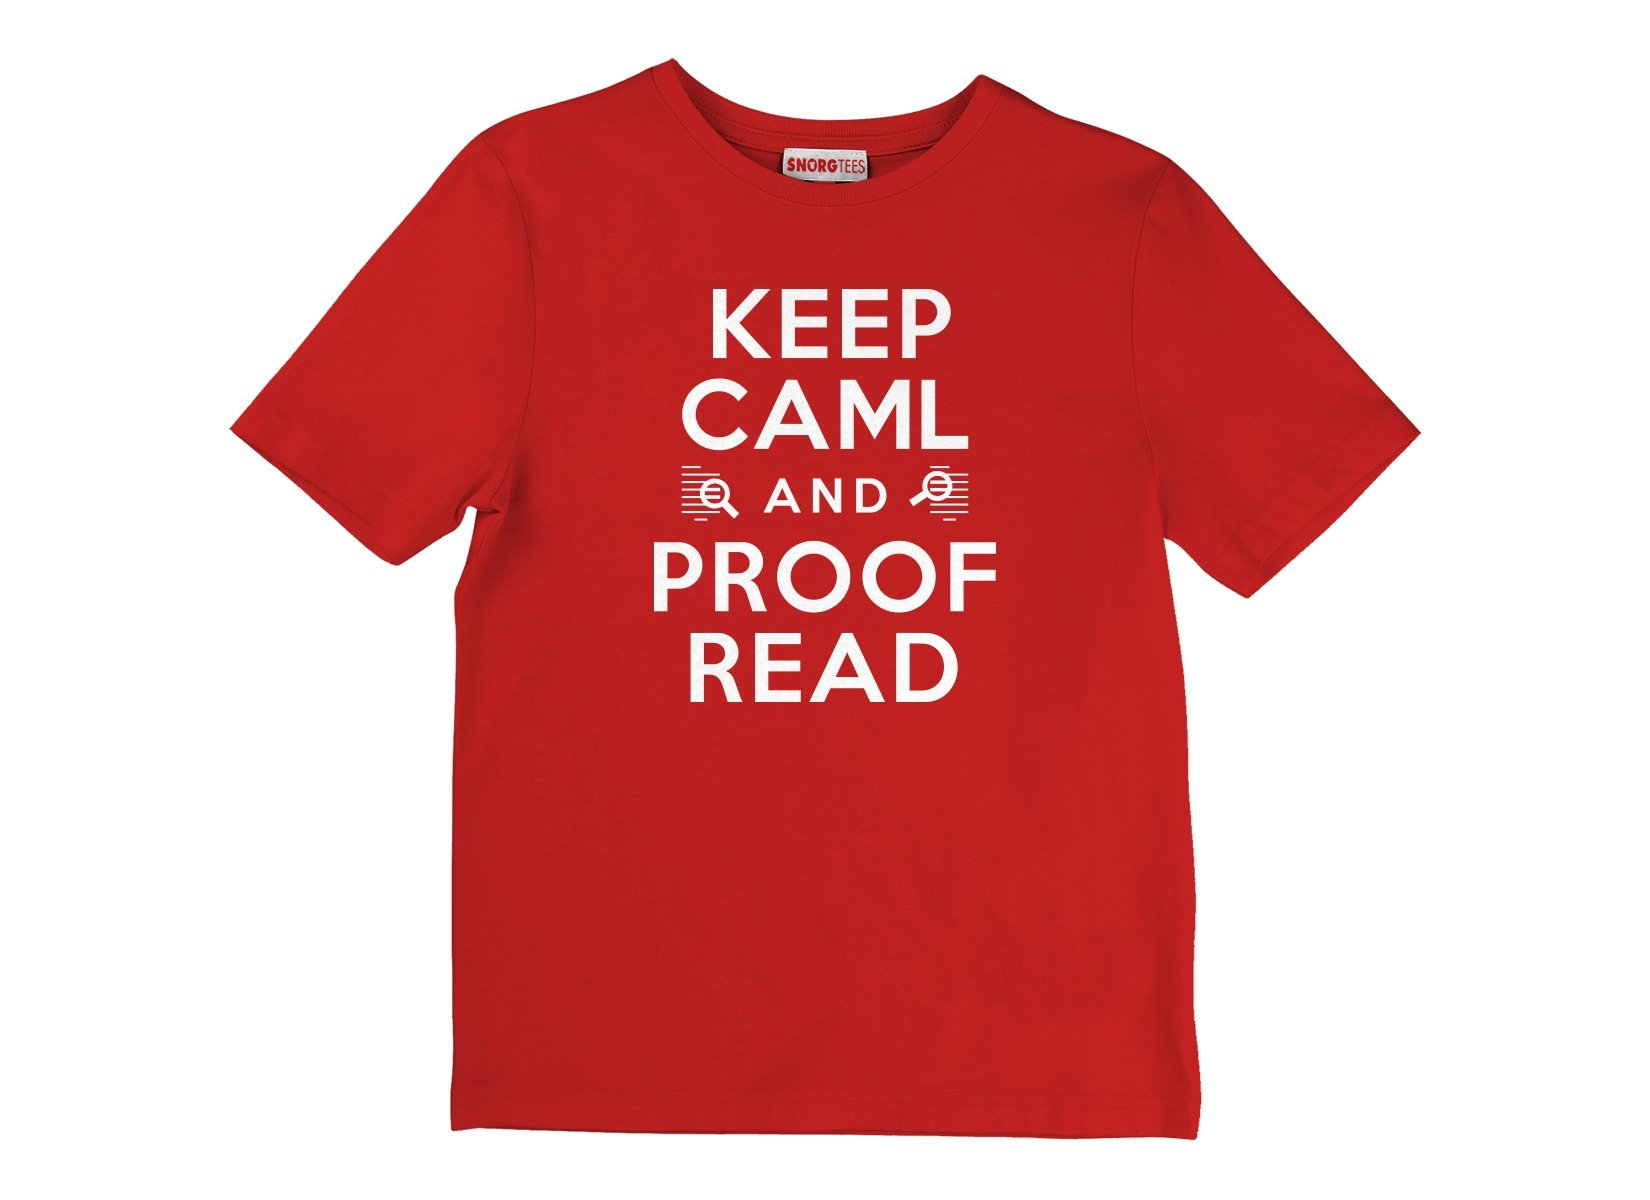 Keep Caml on Kids T-Shirt